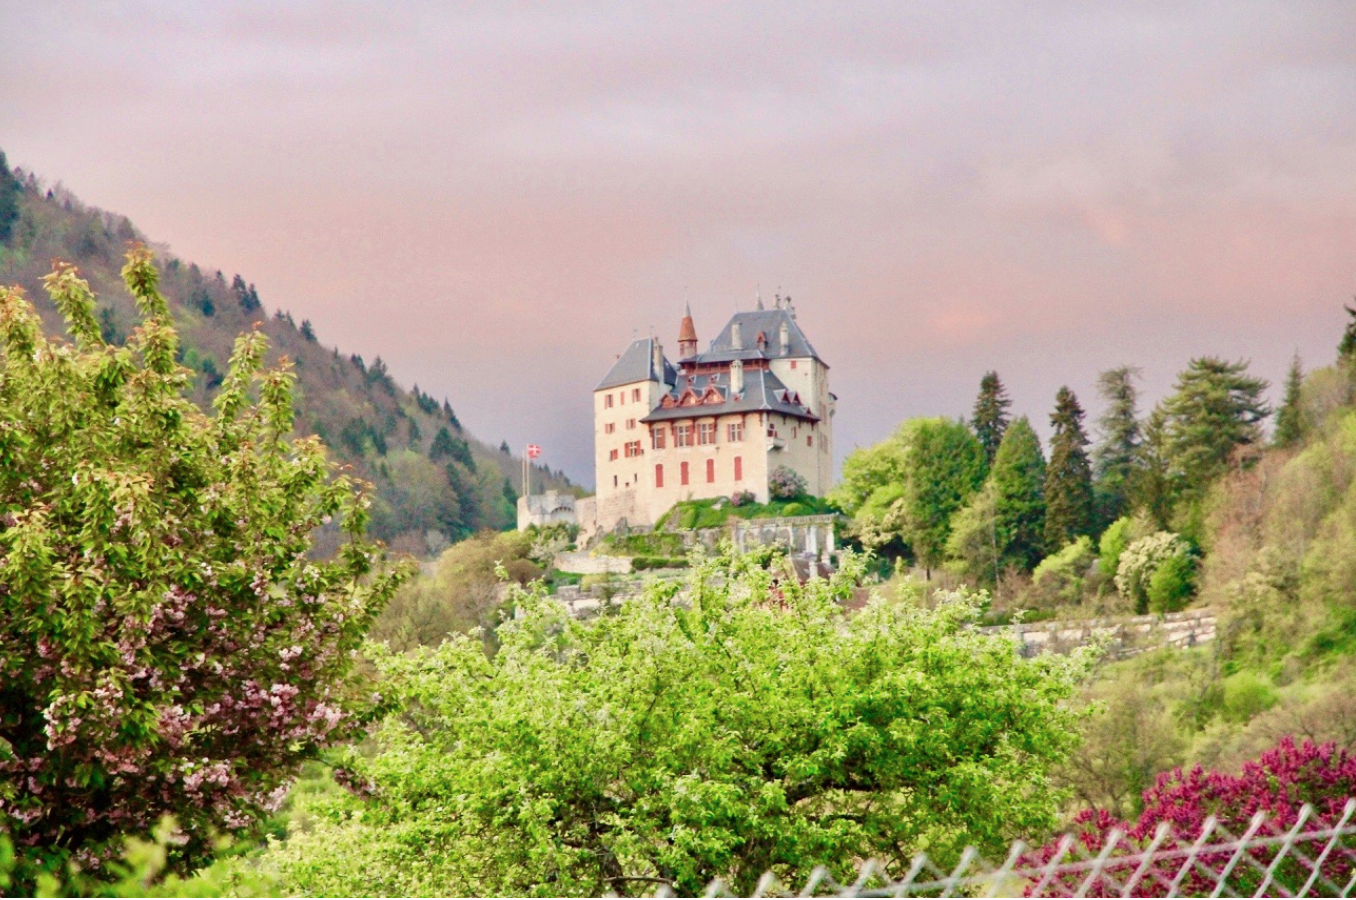 View of the Chateau Menthon St. Bernard from the deck.